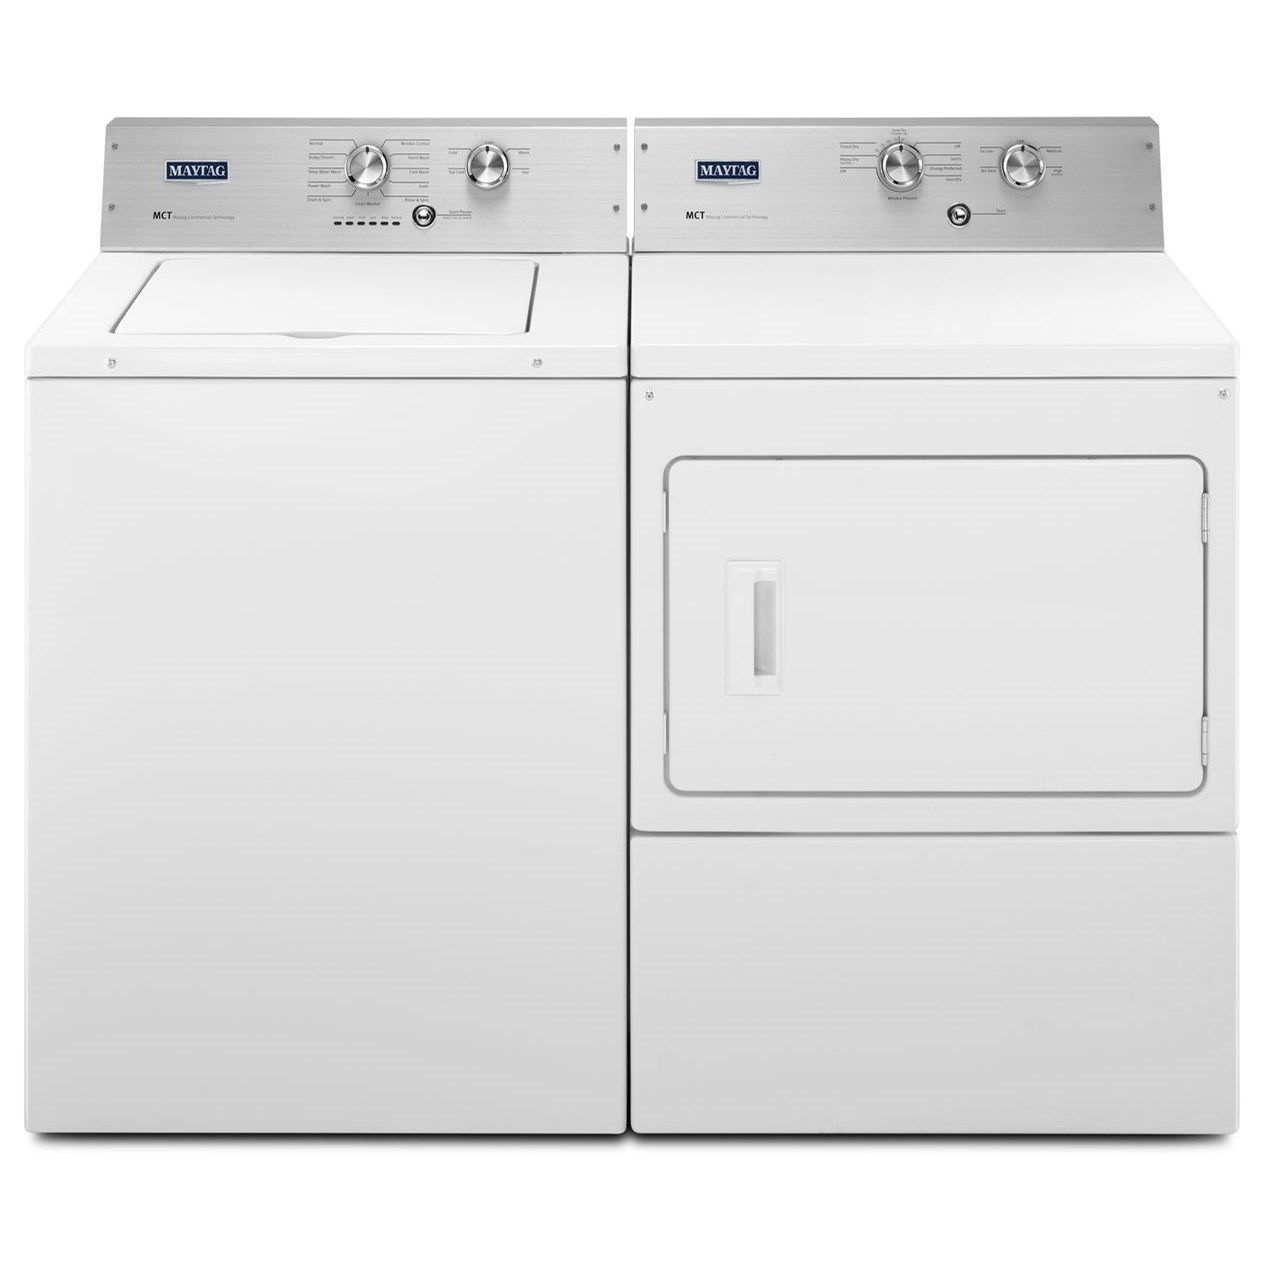 Maytag Washer and Dryer Sets 3.6 Cu. Ft. Washer and 7.4 Cu. Ft. Dryer - Item Number: MVWP475EW+MEDP475EW